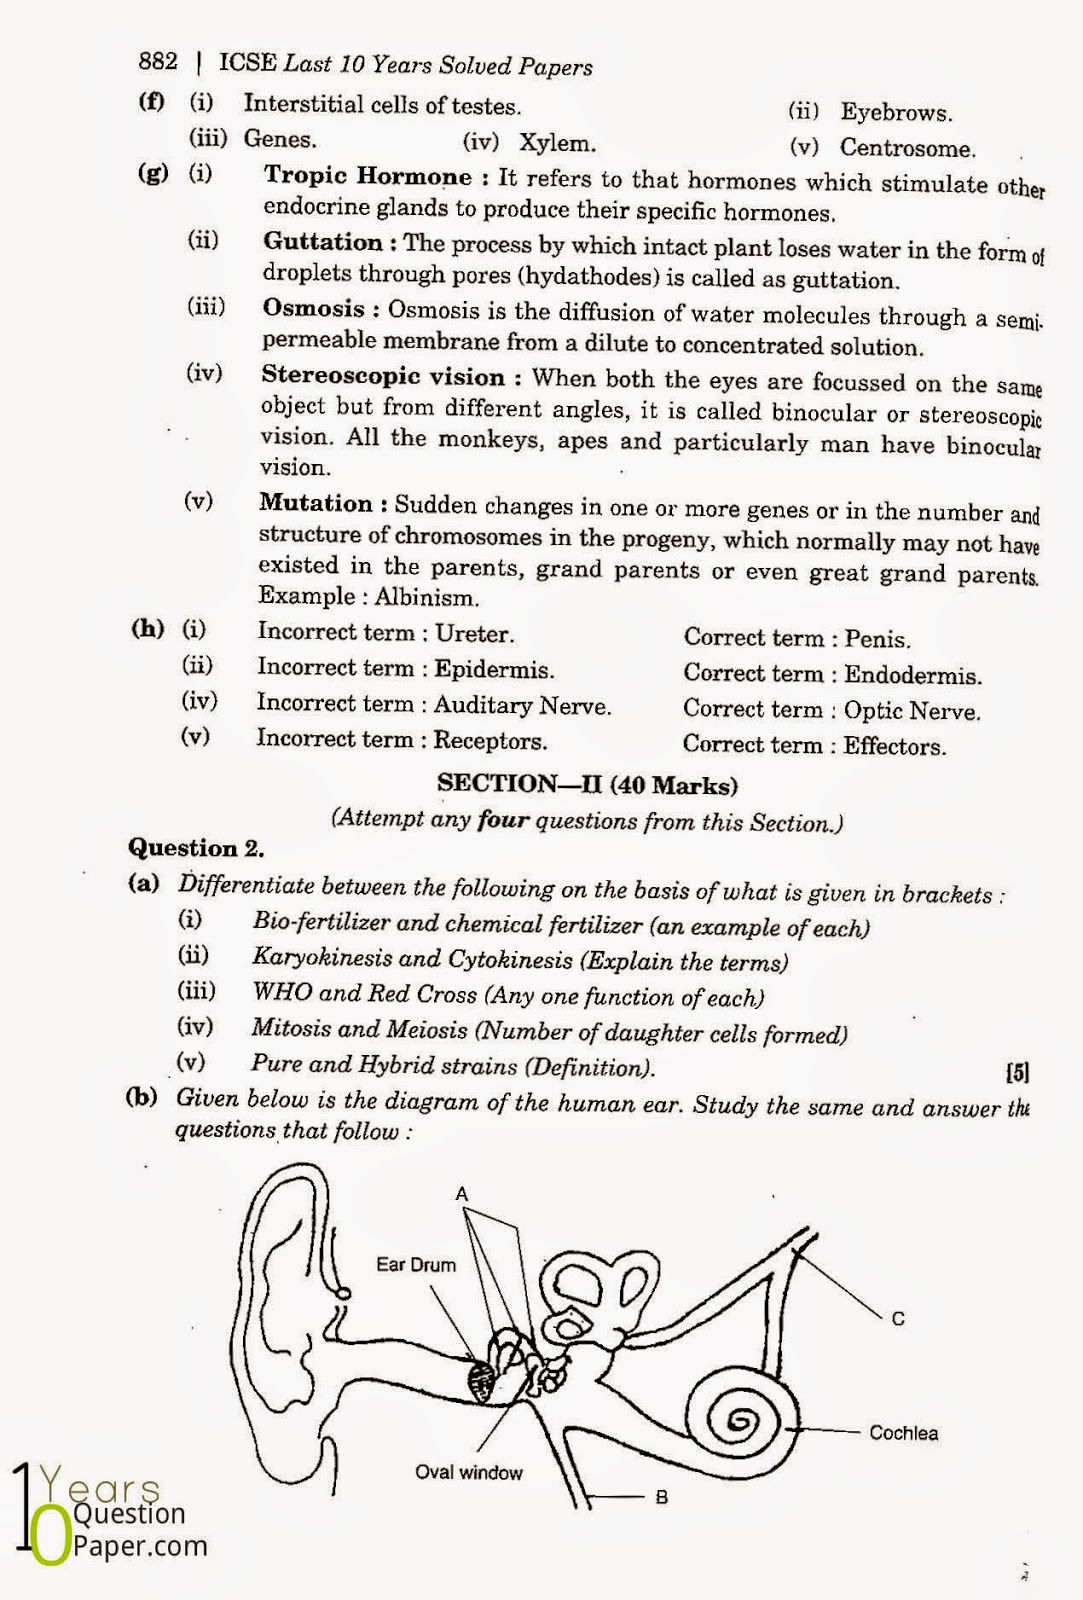 icse class 10th Biology solved question paper 2007